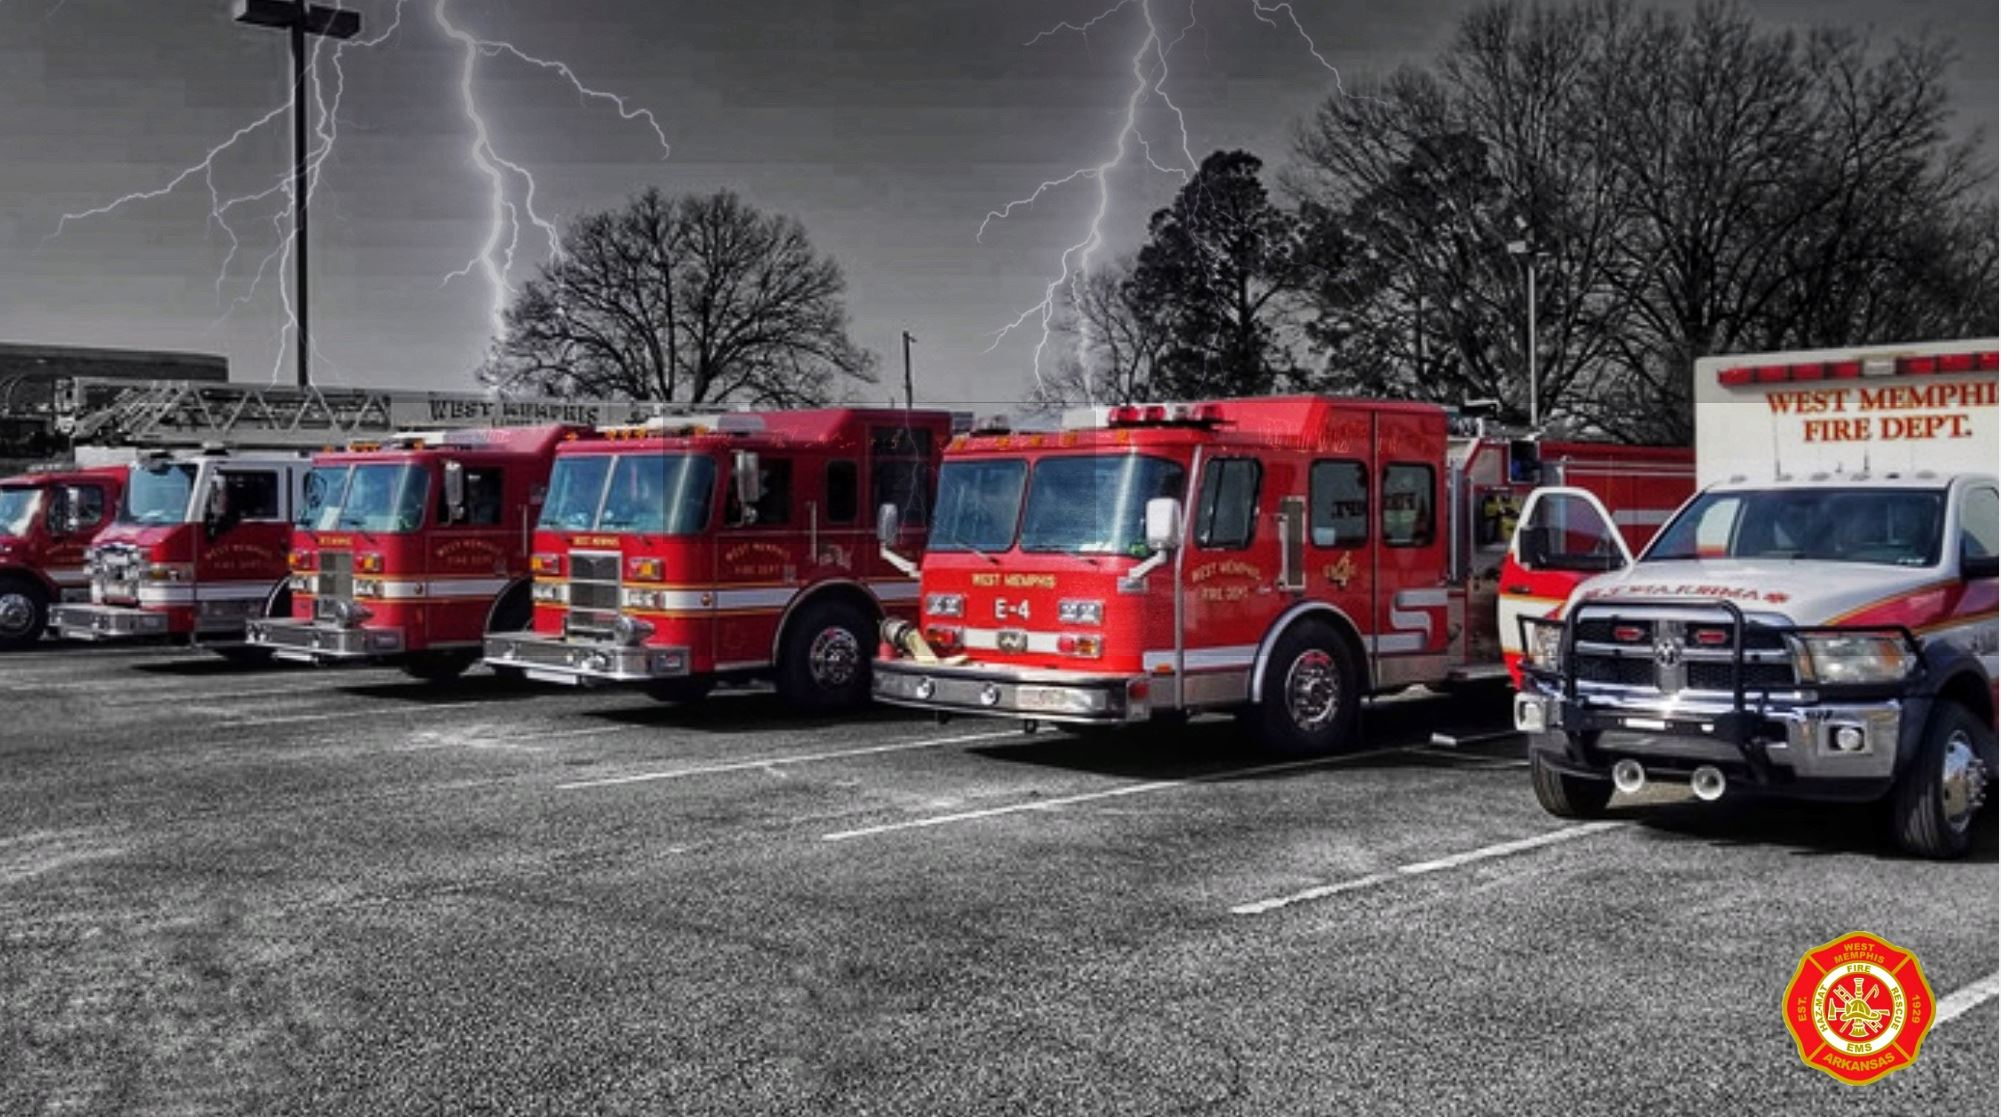 West Memphis Fire Department Engines